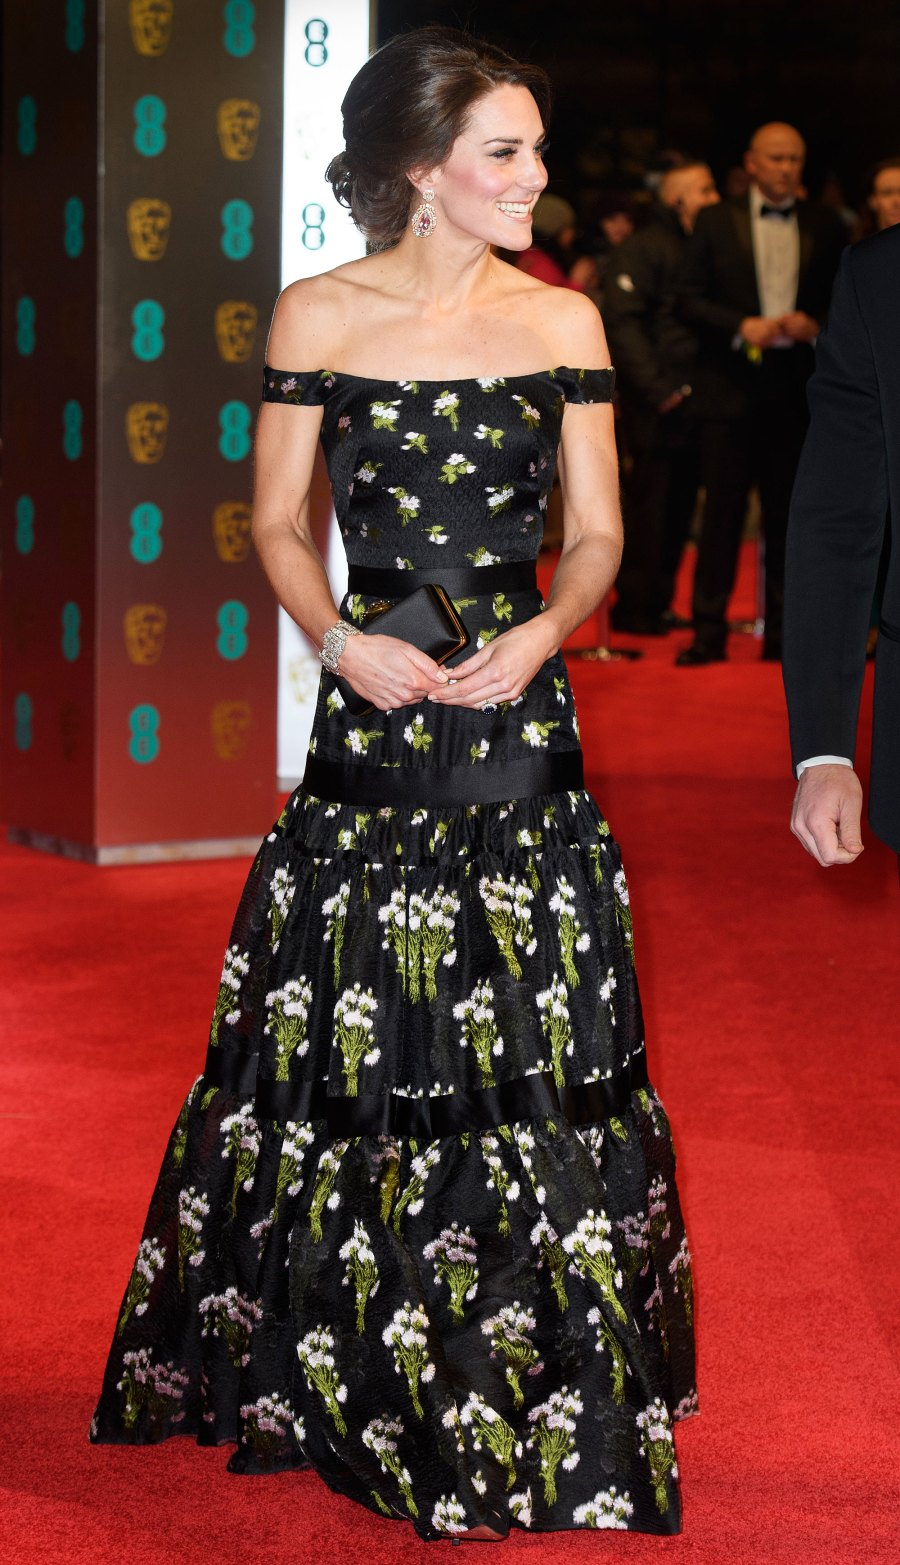 Duchess Kate and Prince William BAFTA Awards Red Carpet Appearances - 2017